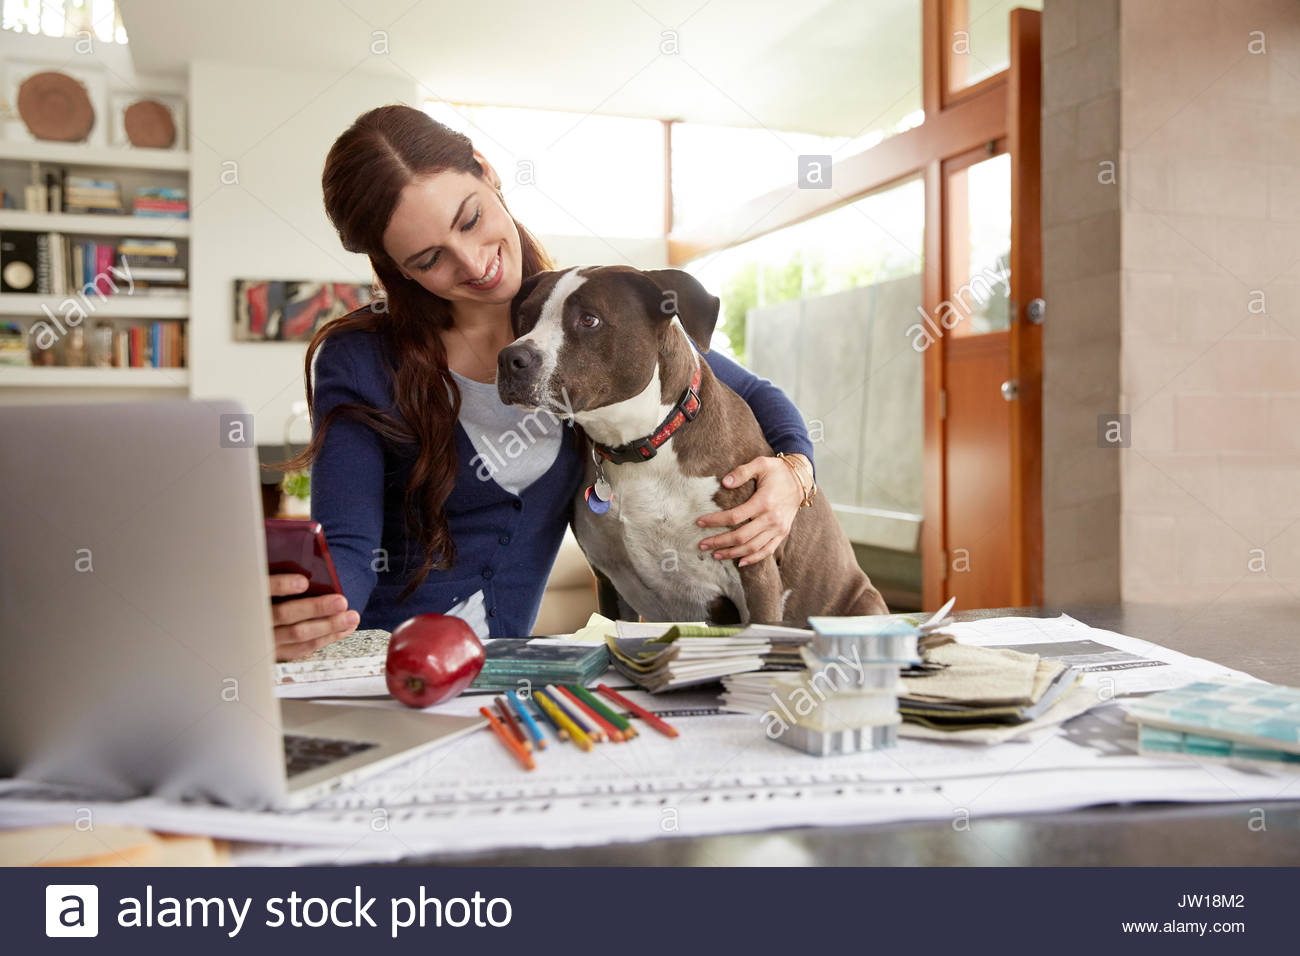 Female interior designer petting dog at desk in home office - Stock Image